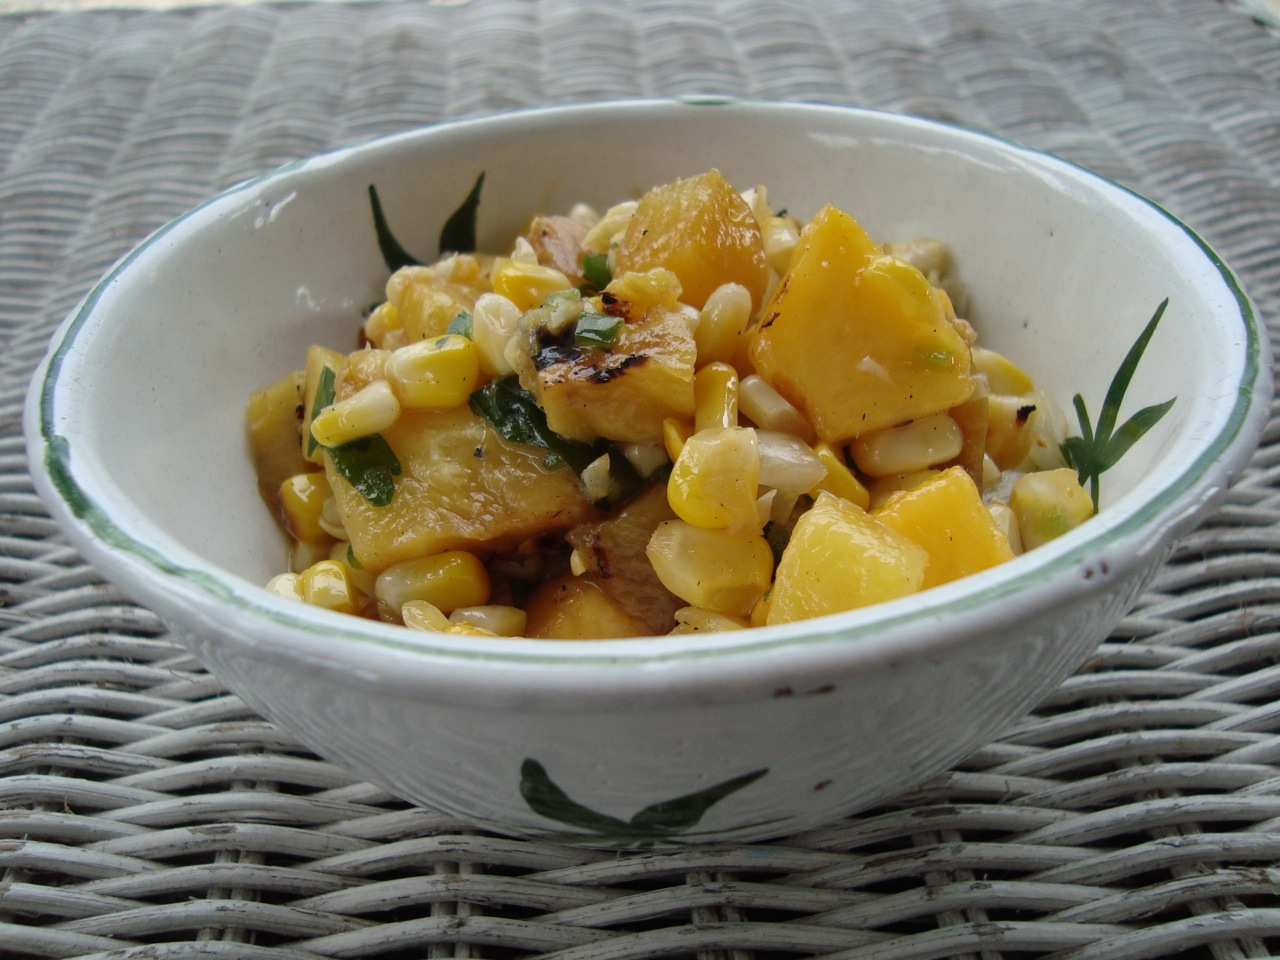 Next Day Grilled Corn, Pineapple, and Peach Salsa